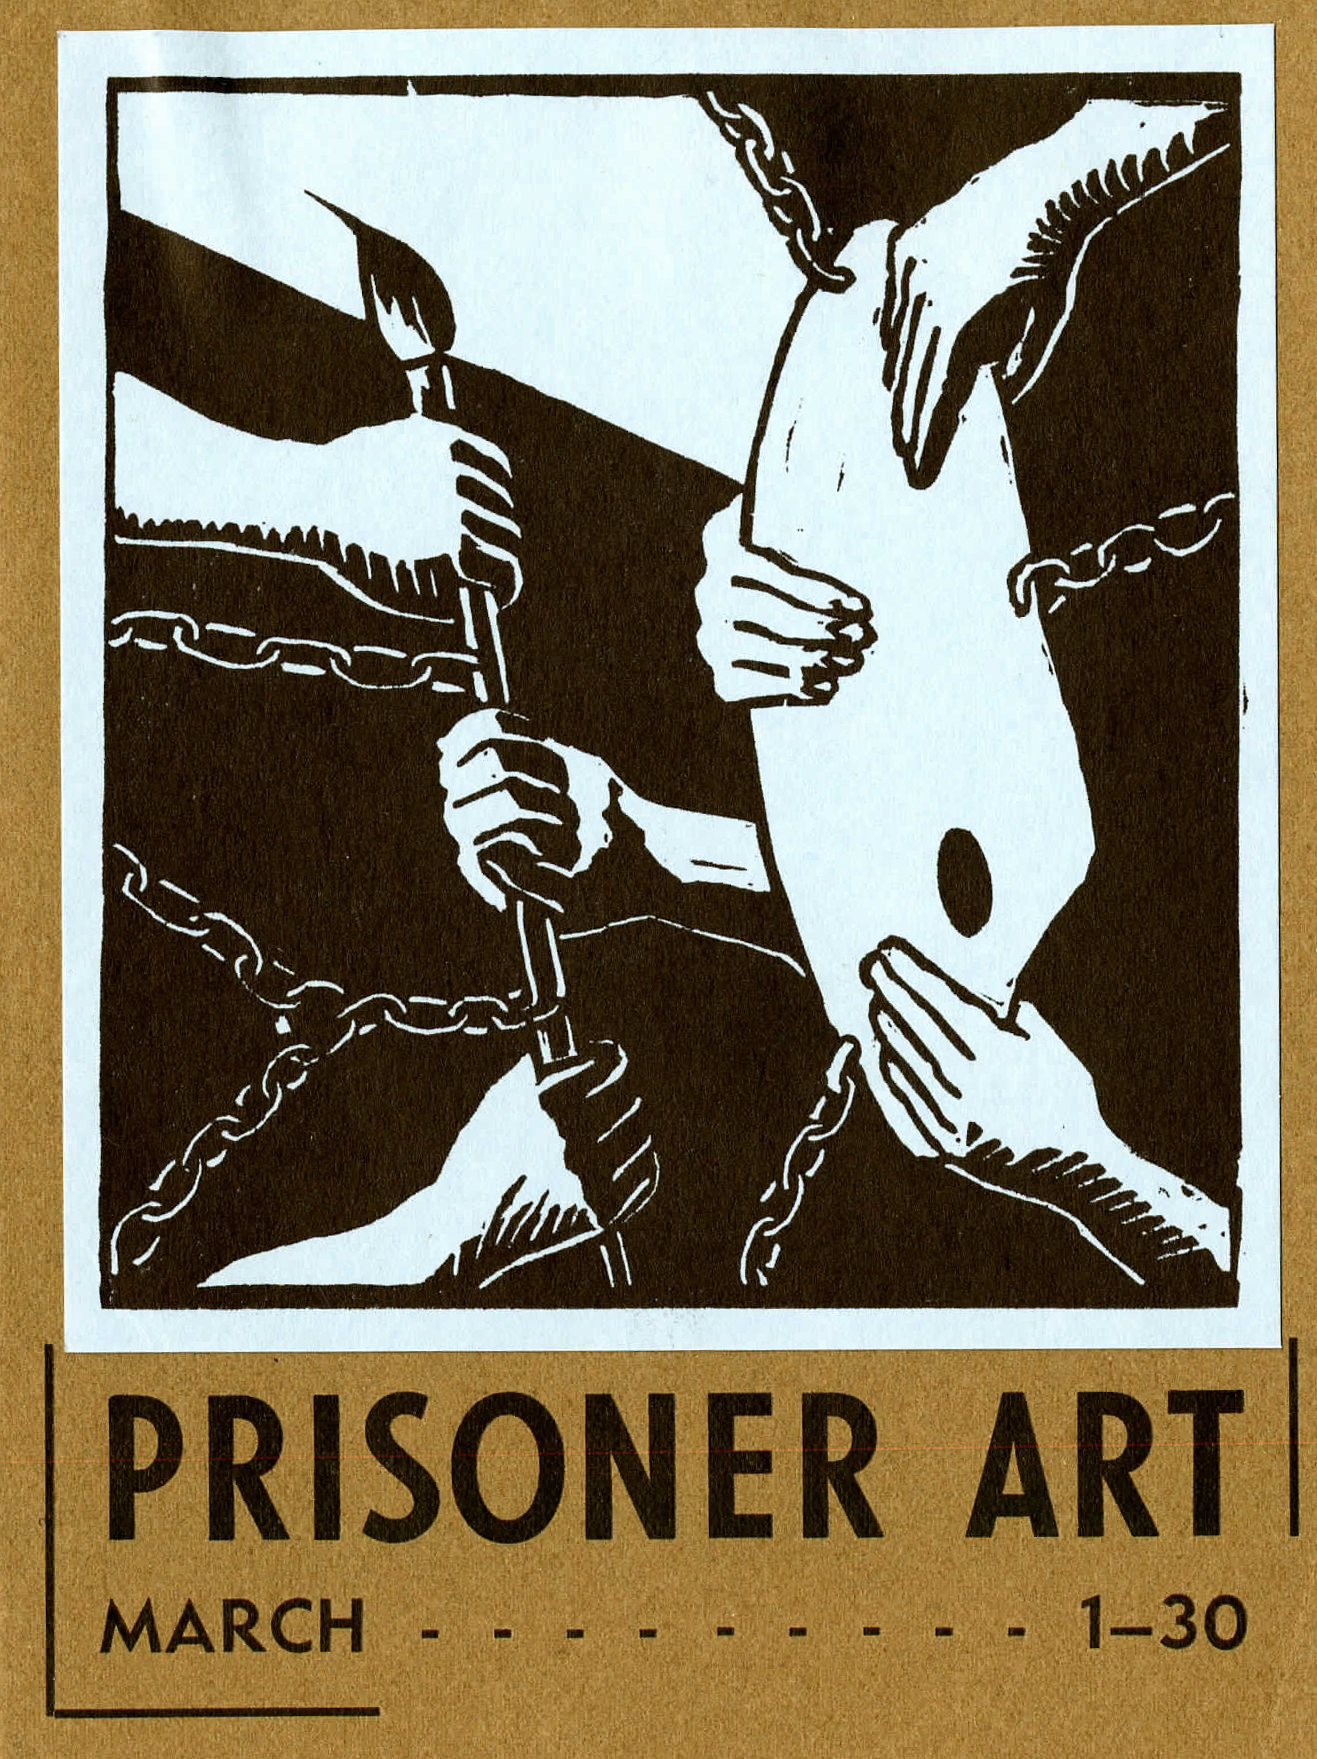 "This is a brochure for the exhibit ""Prisoner Art"" which ran from March 1-30. The artwork shows 6 hands holding paintbrush and easel, yet bound by chains."